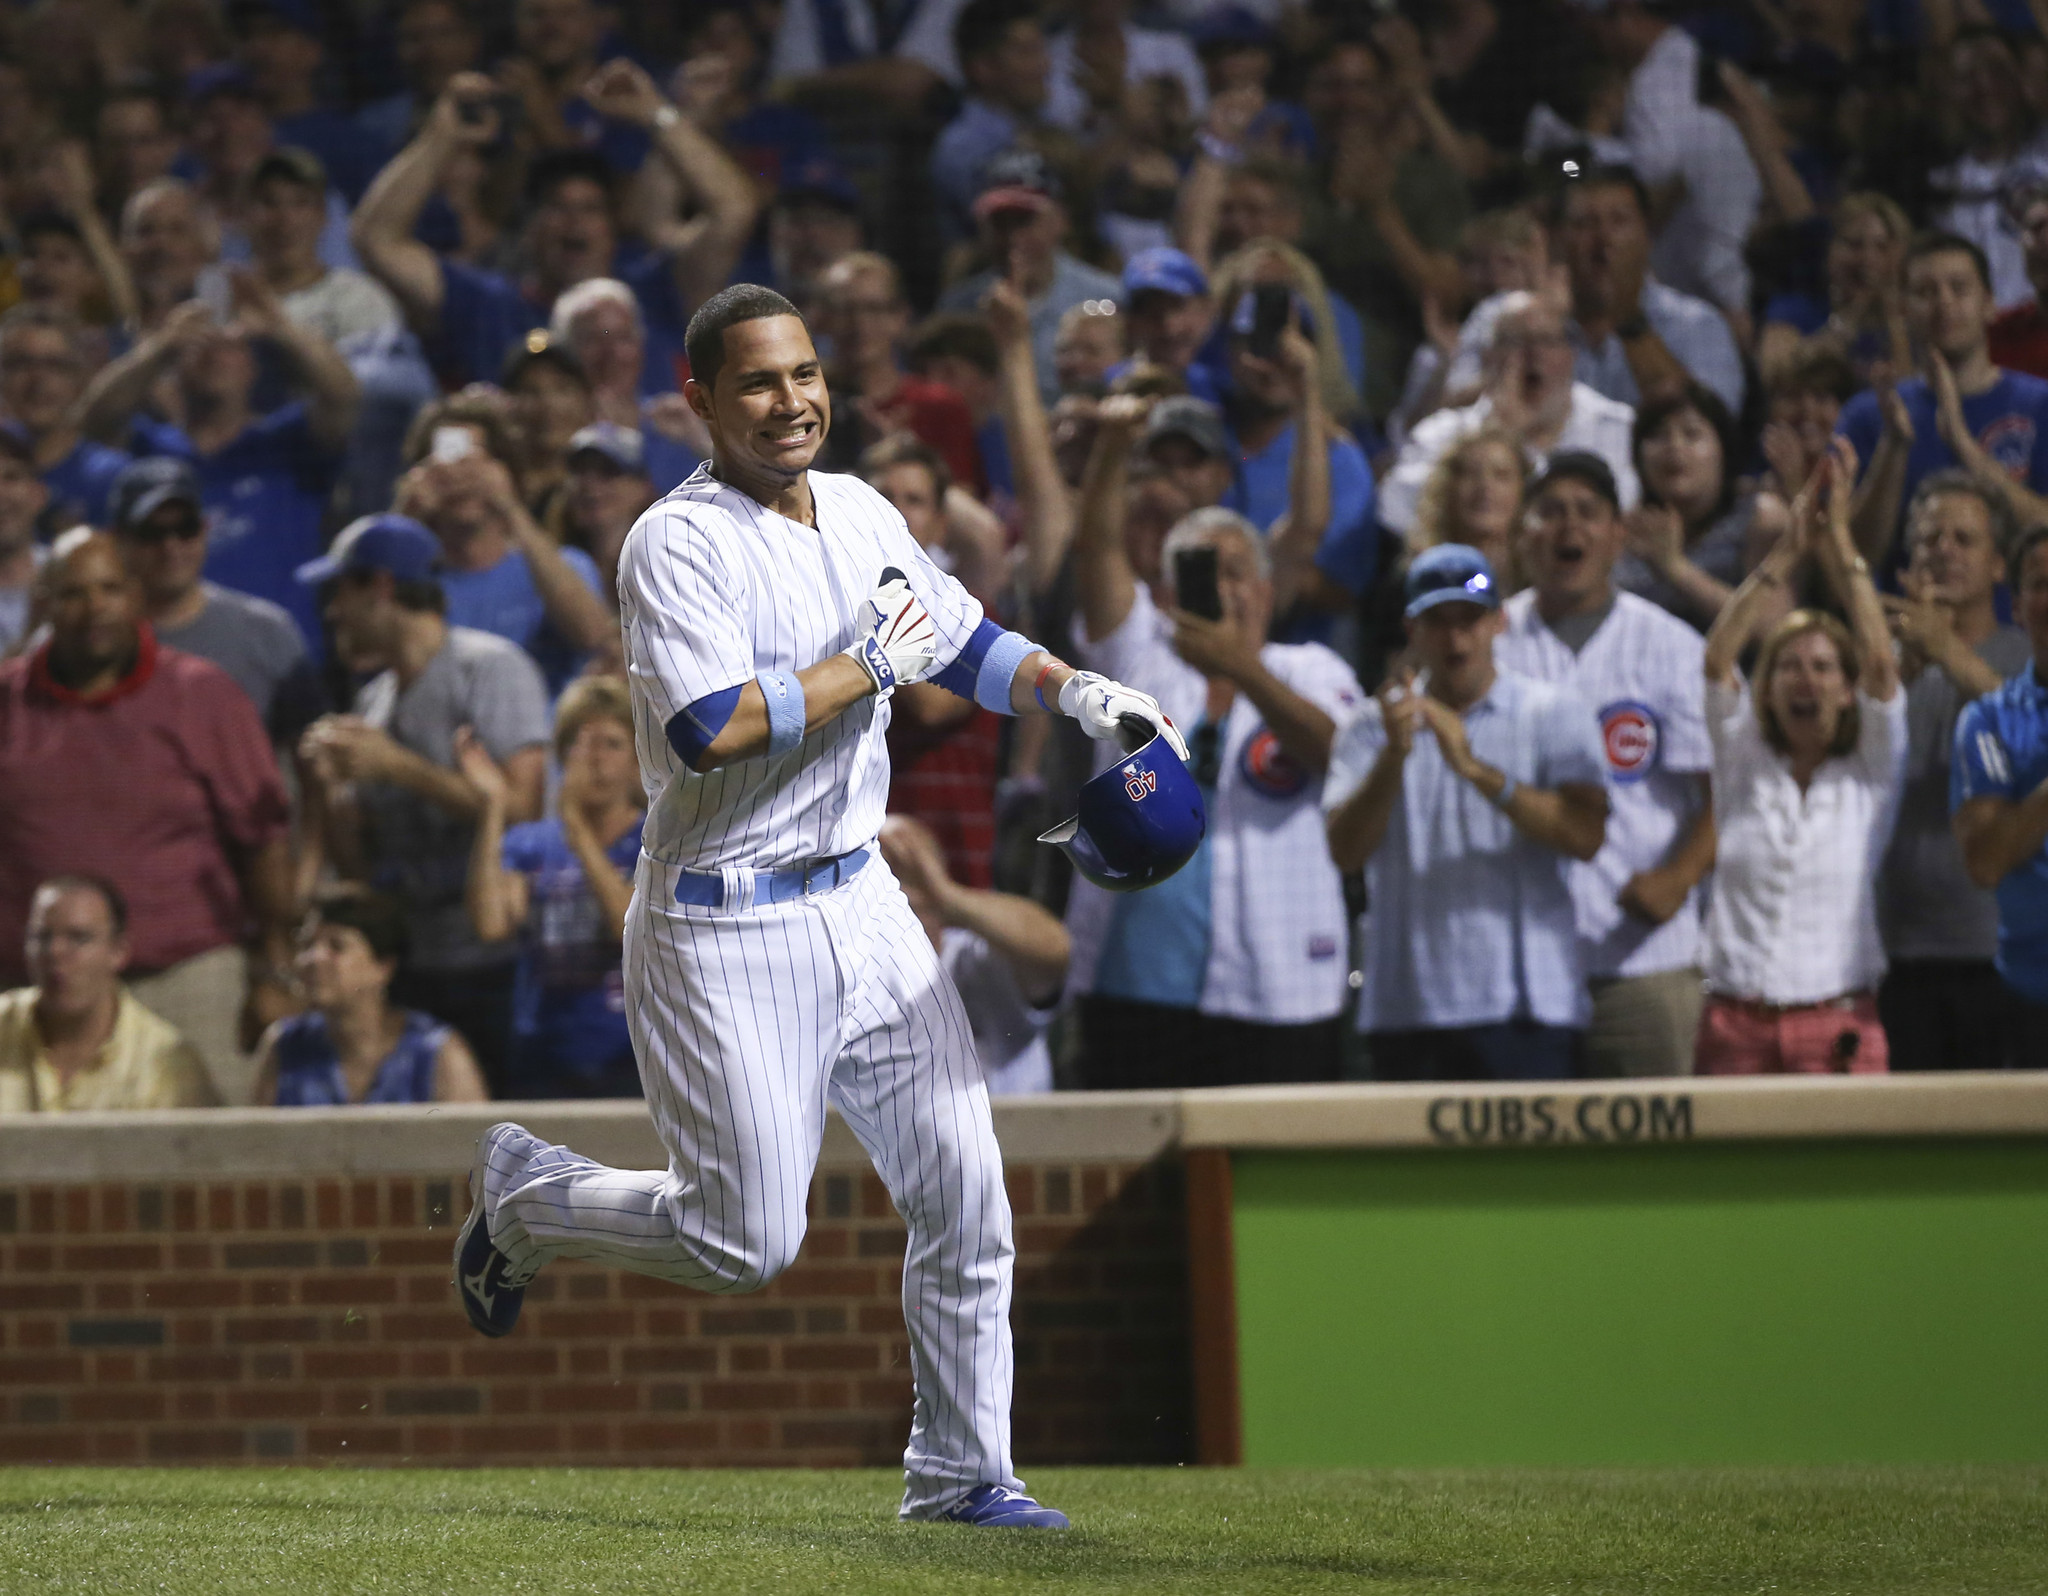 Ct-willson-contreras-enthusiasm-bits-cubs-spt-0622-20160621